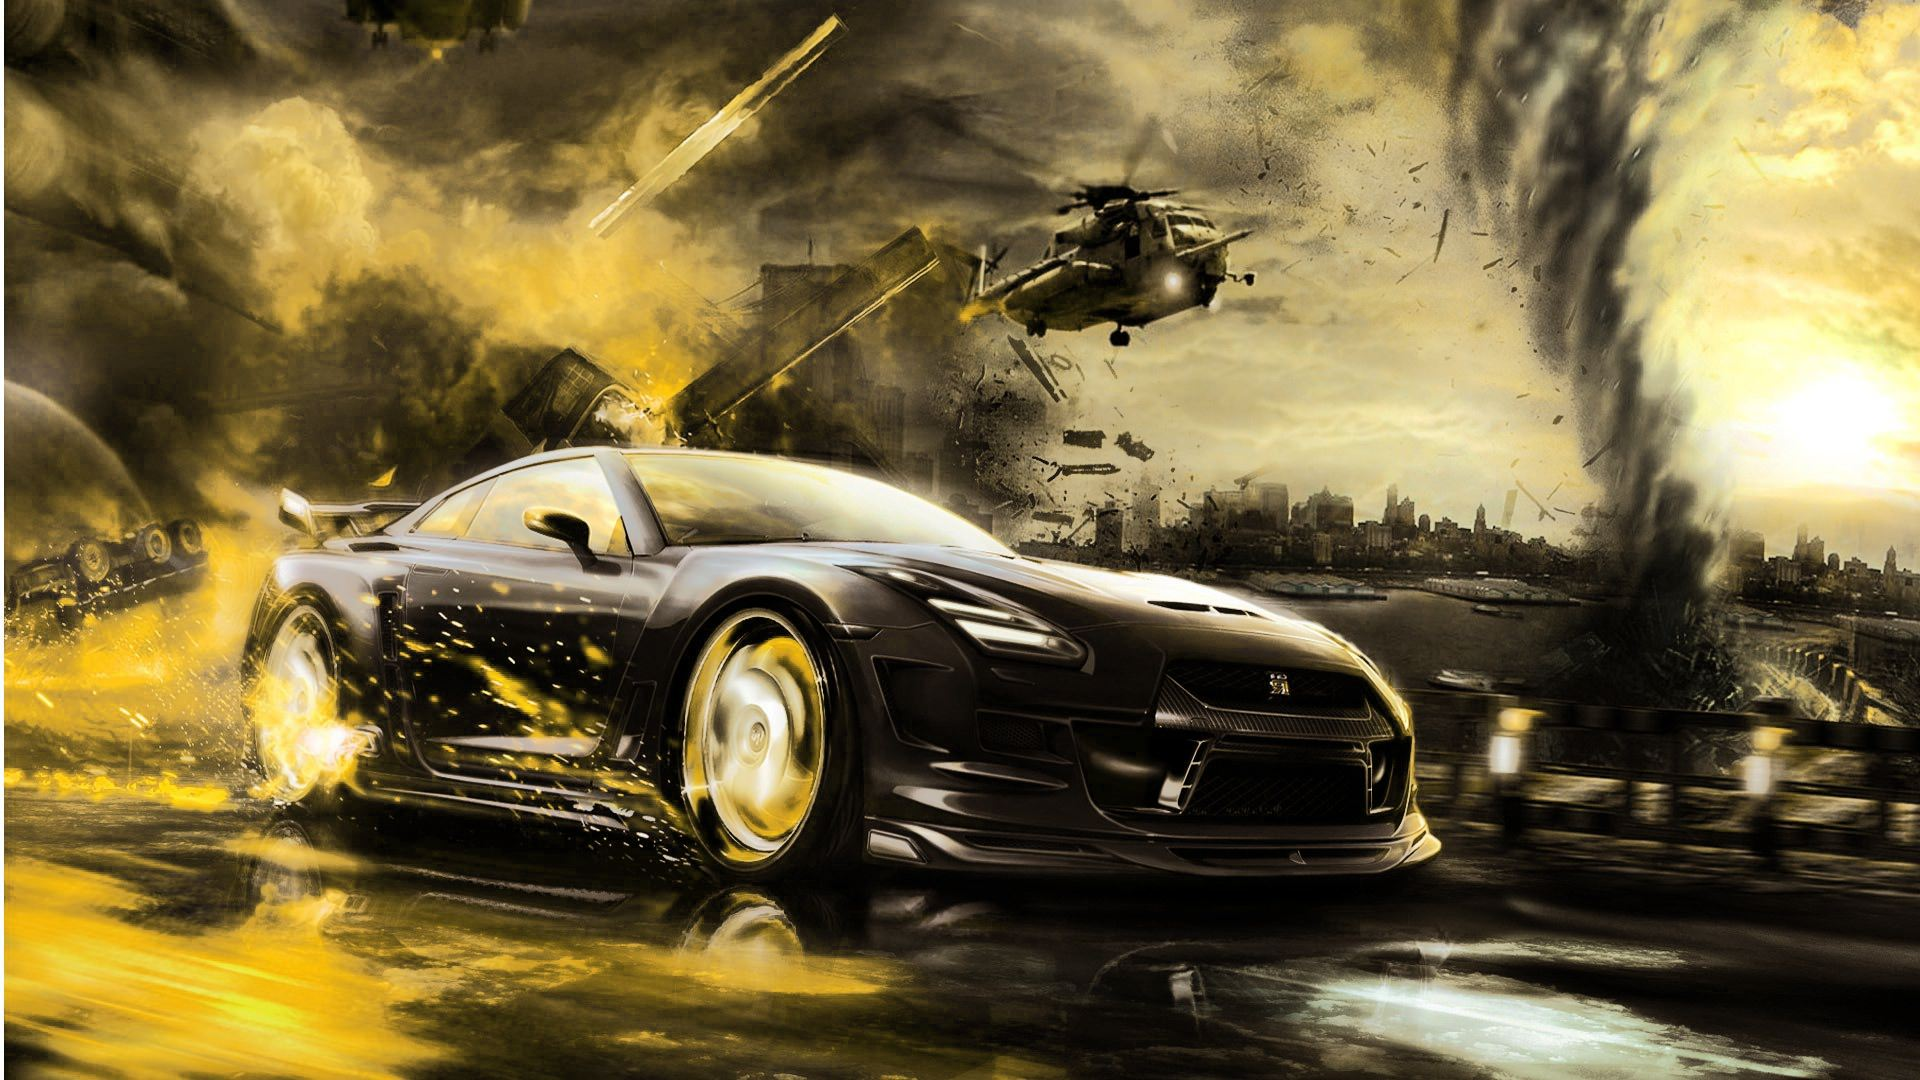 185+ hd car backgrounds, wallpapers, images, pictures | design